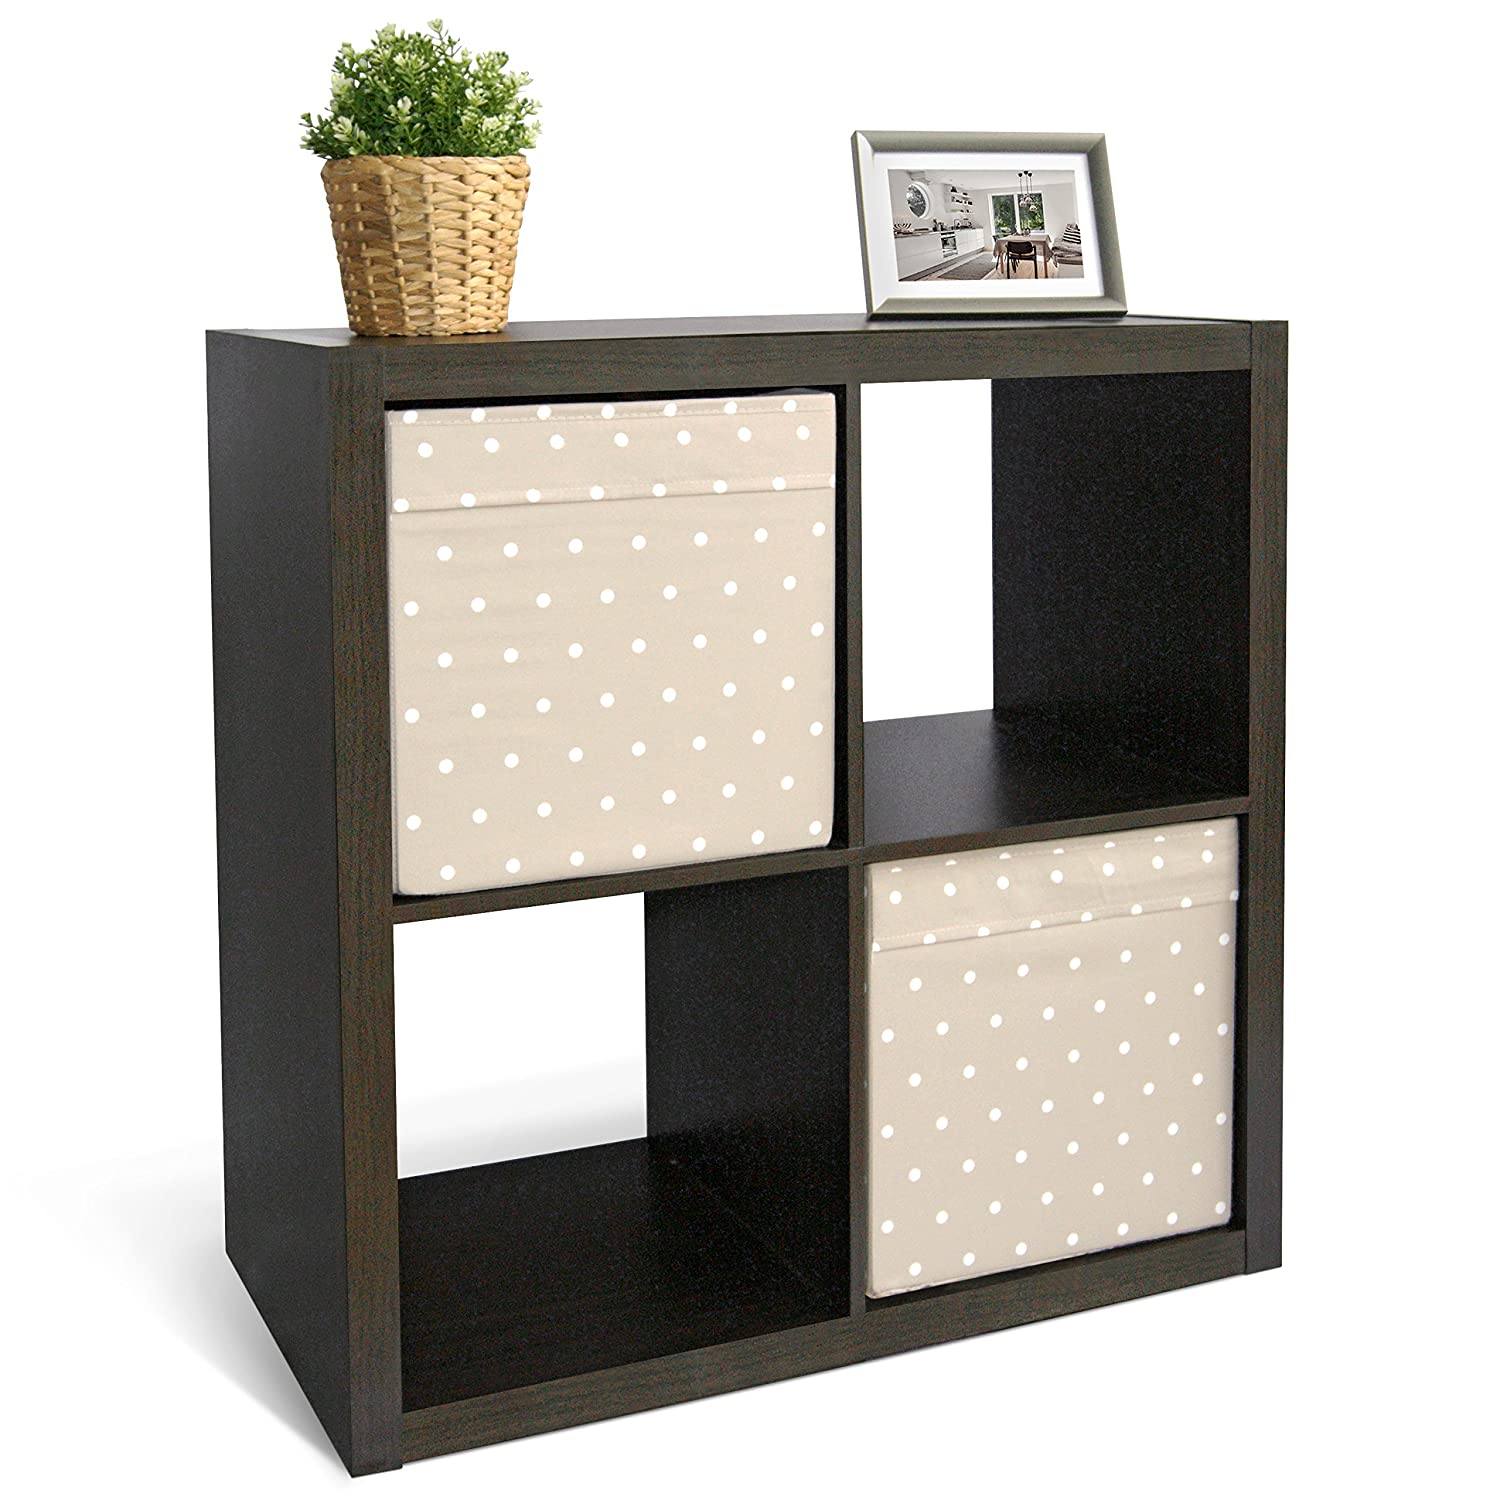 CAP LIVING 2 4 6 Cube Organizer w Extra Wide Frame, Sturdy Storage Room Divider, 2 x 1 2 x 2 2 x 3 Bookcase, Colors Available in Espresso and White Espresso, 4 Cube